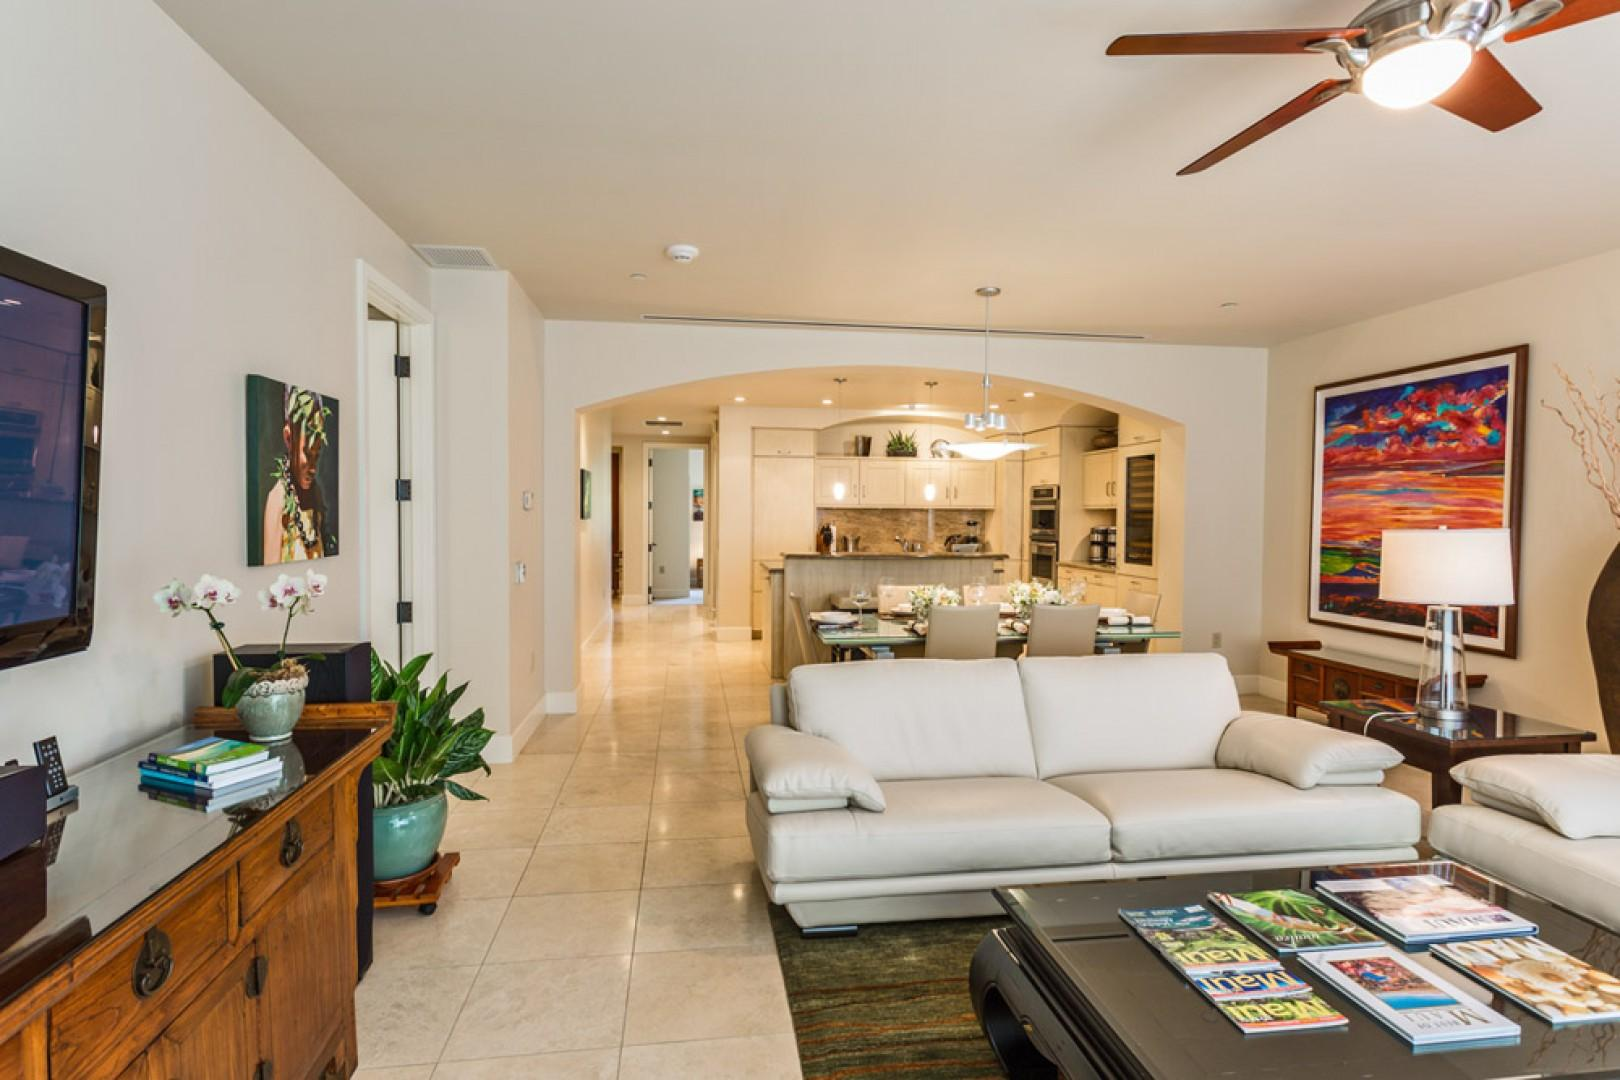 Another view of the spacious open-concept great room.